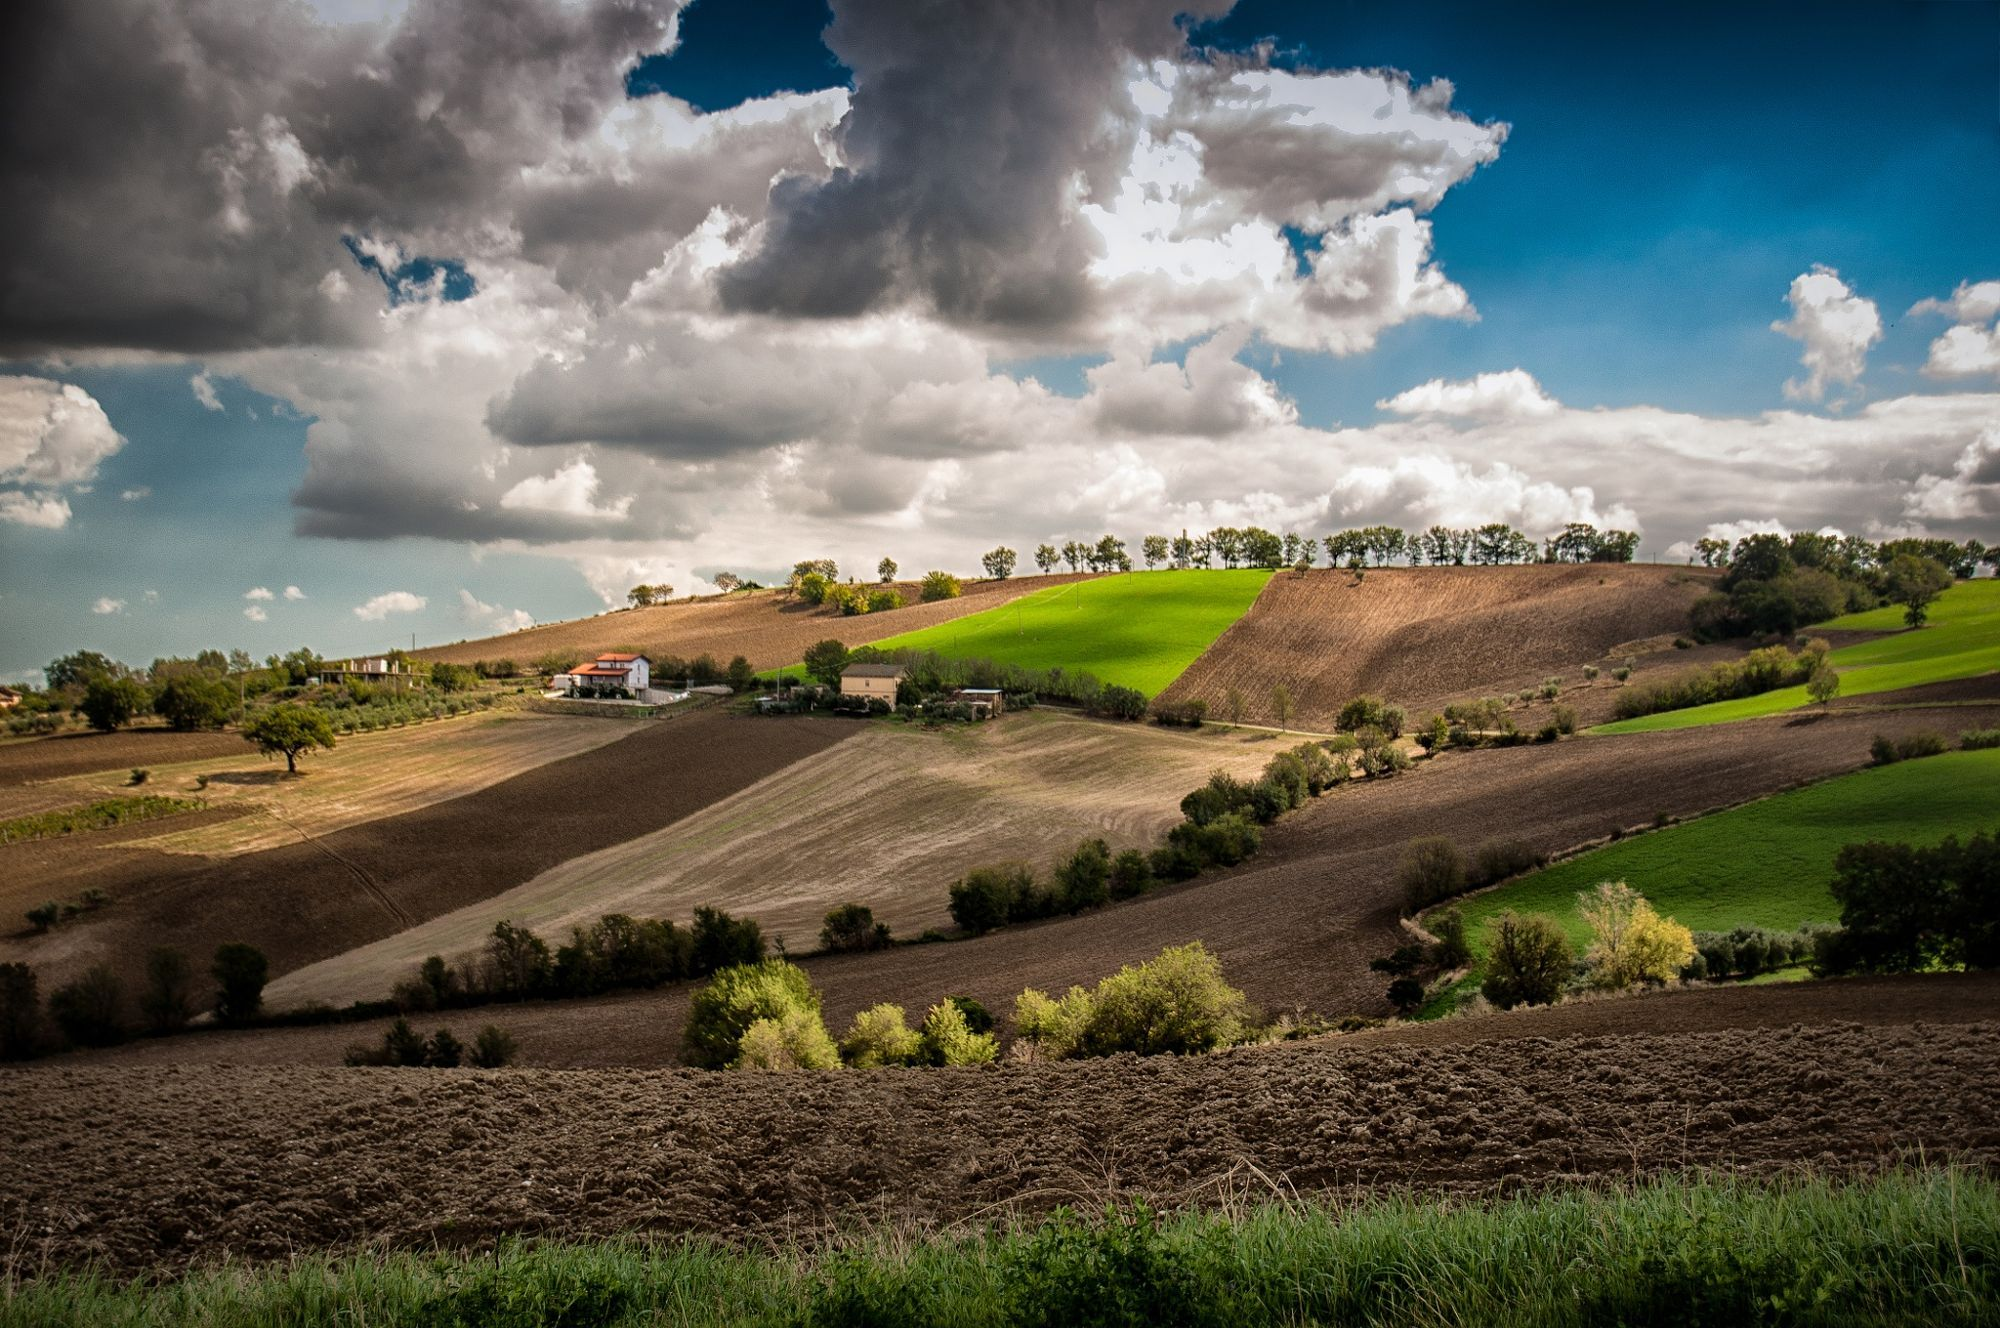 Games of clouds by Paolo Dari on 500px